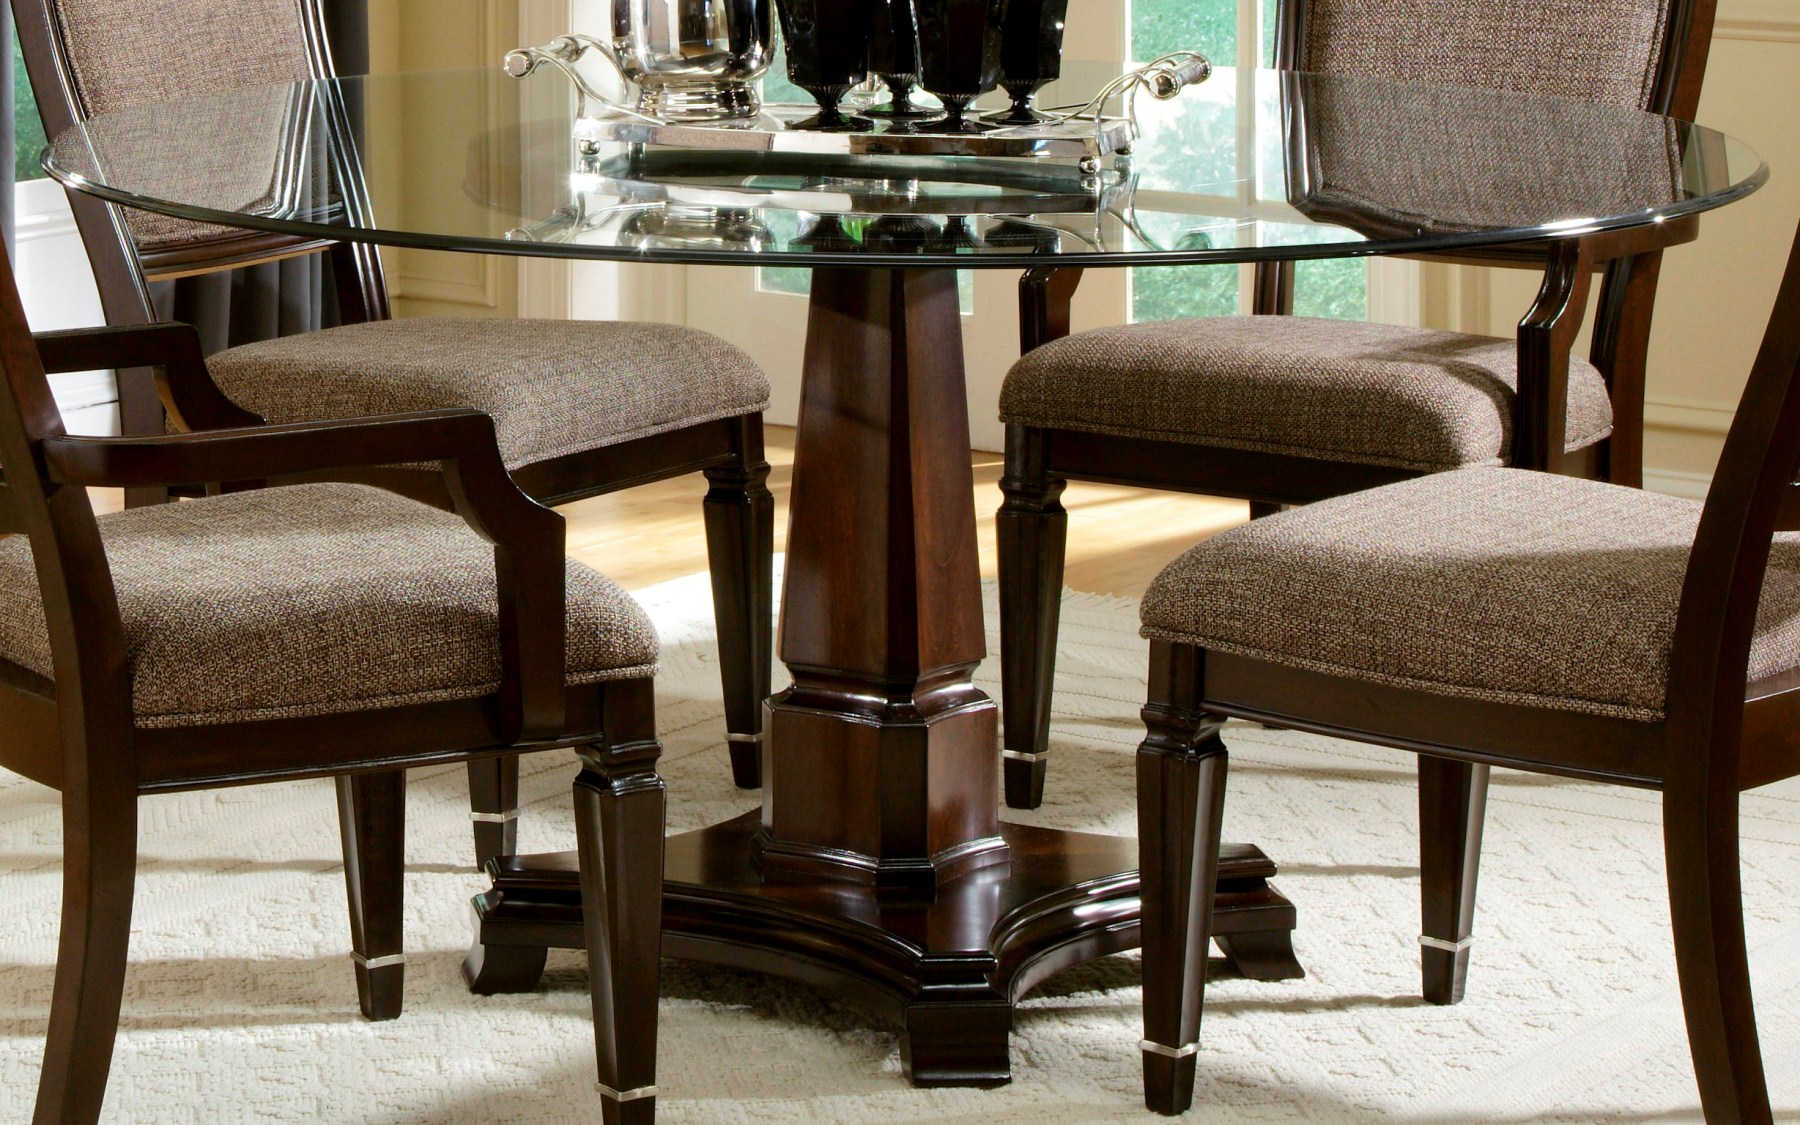 Delightful Wood Pedestal Table Base For Glass Top Design With Four Arm Chairs